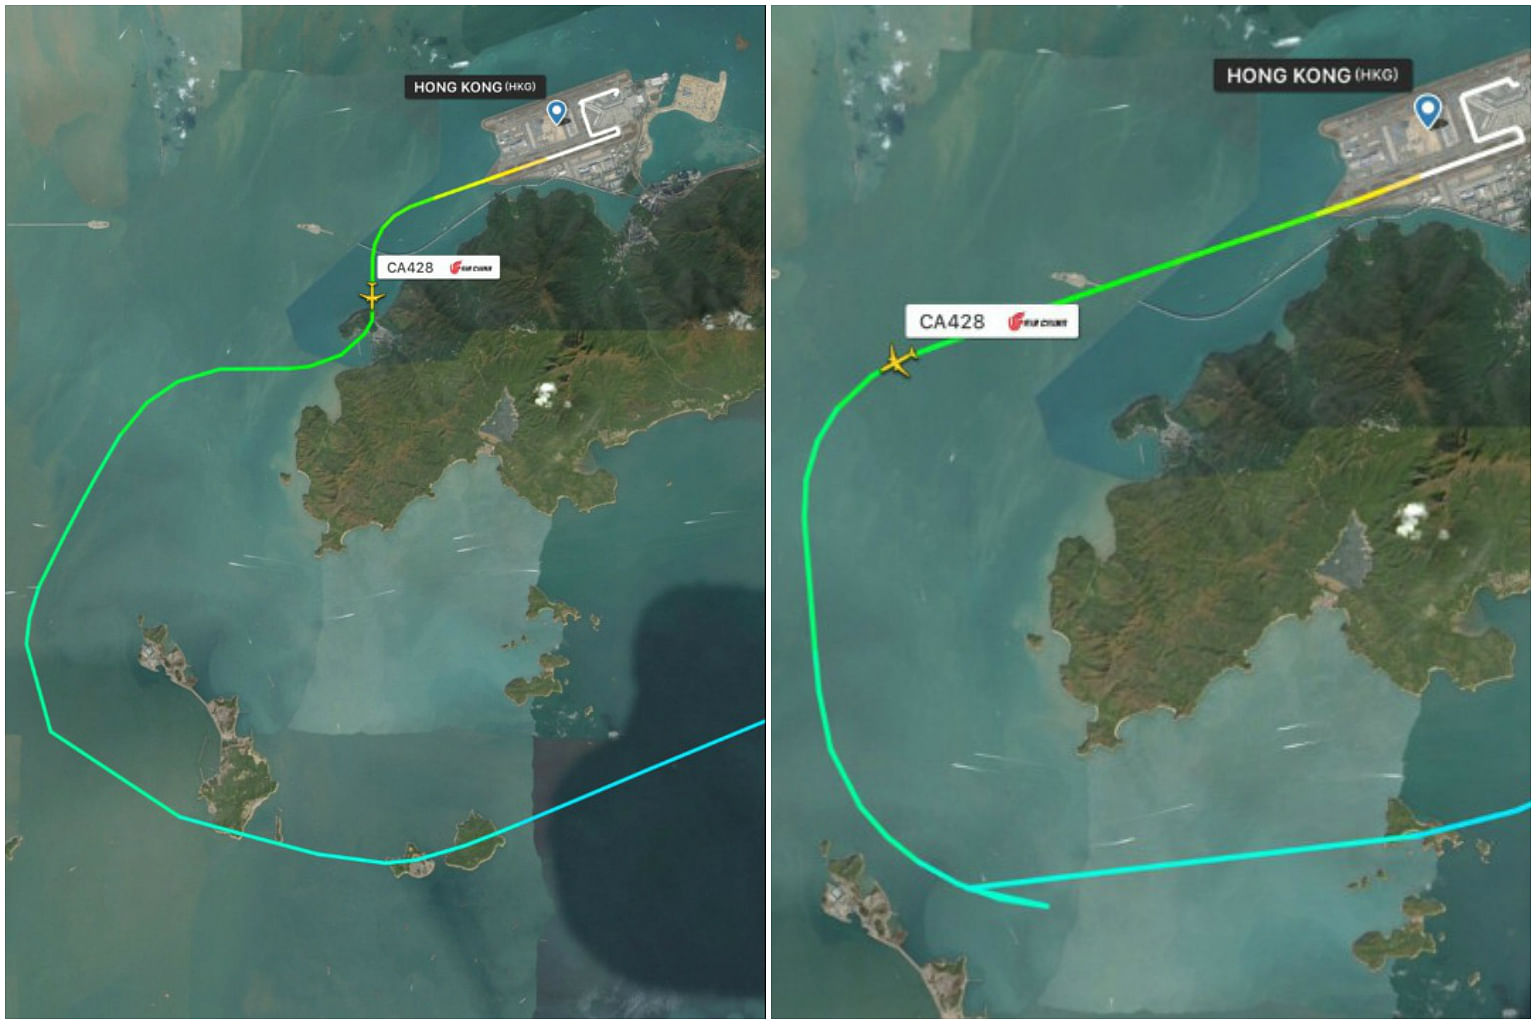 Air China Flight Narrowly Misses Mountain in Hong Kong